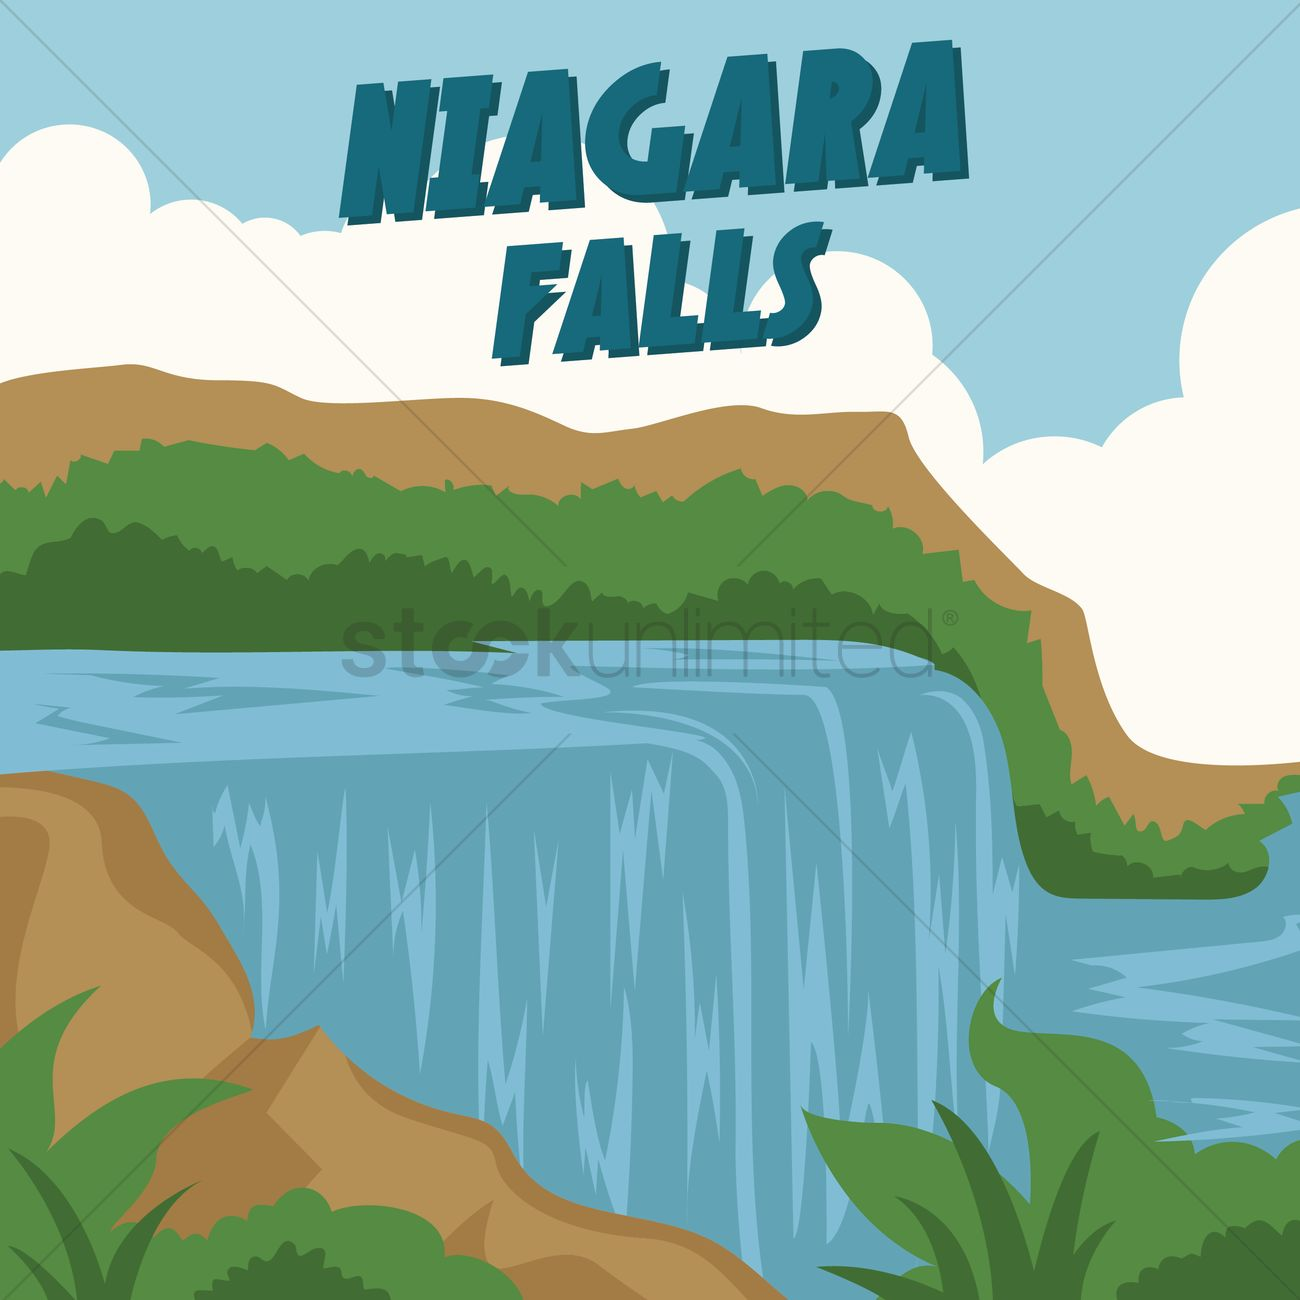 niagara falls vector image 1567202 stockunlimited clipart tourist guide tourist clipart pictures